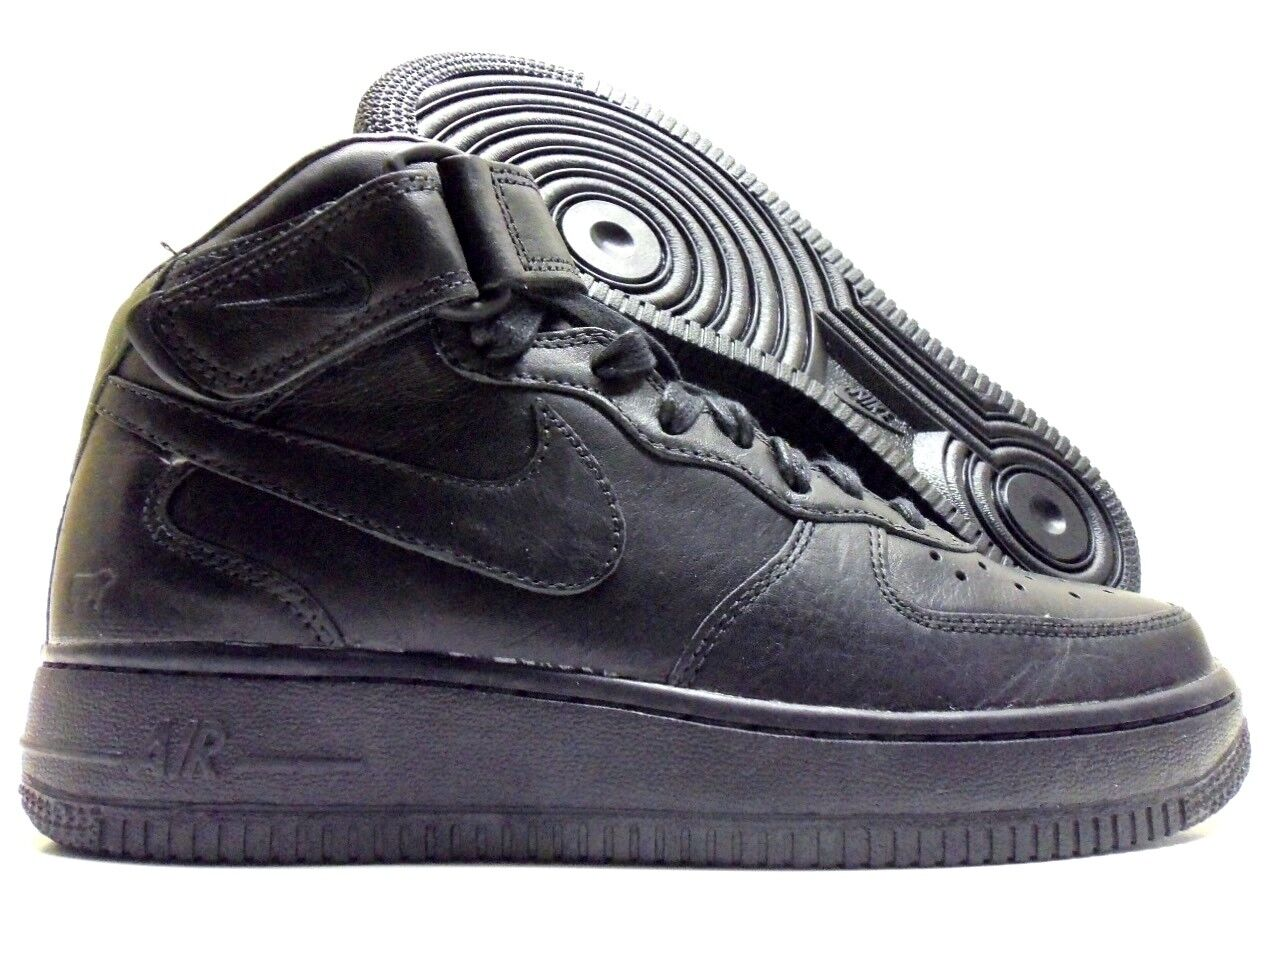 NIKE AIR FORCE 1 WILL LEATHER PREMIUM ID ALL BLACK SIZE WOMEN'S 6.5 [921291-991]